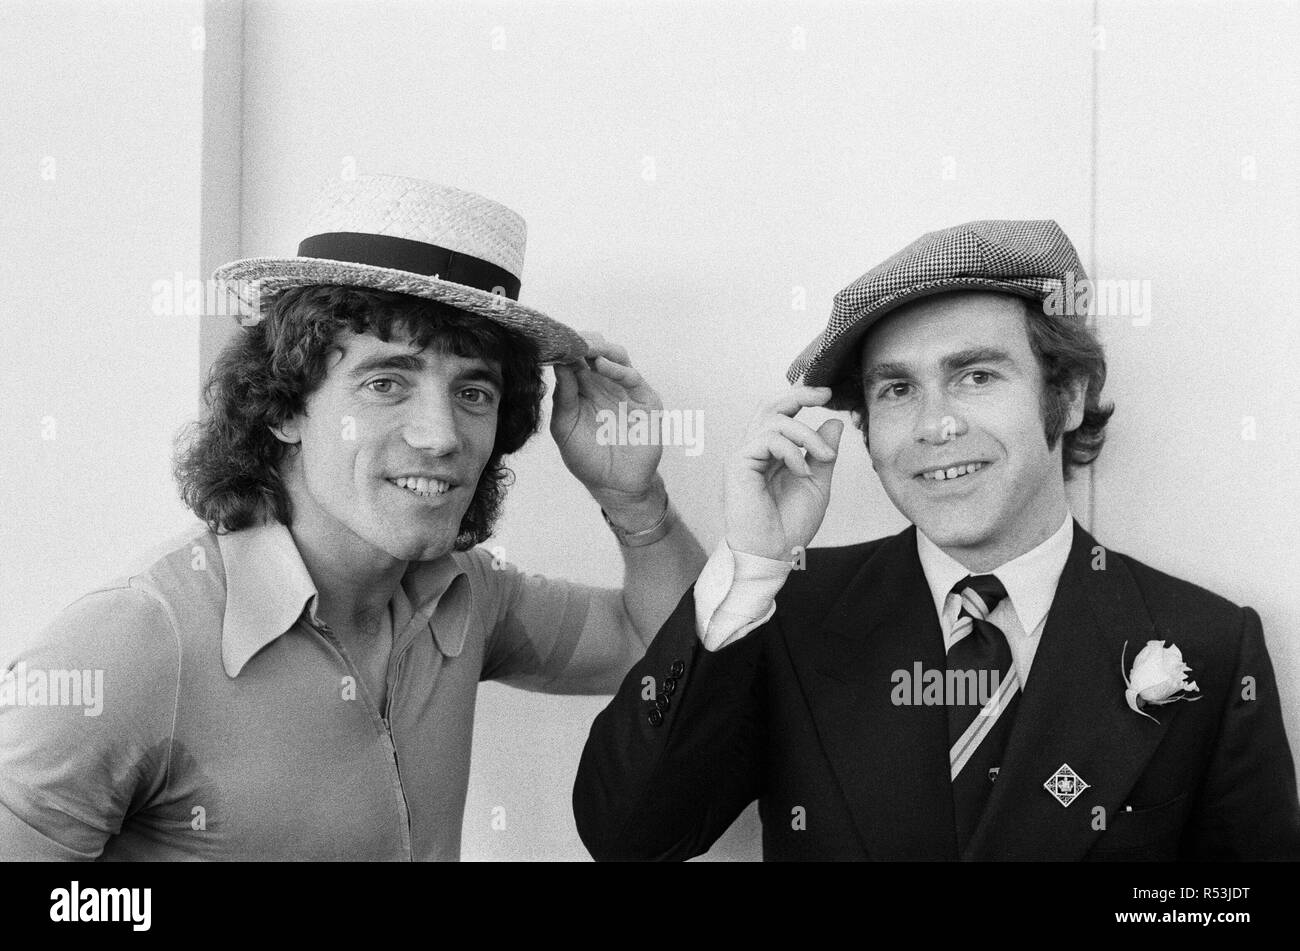 Kevin Keegan in a straw boater hat and Elton John in his own hat. They are pictured prior to leaving Luton Airport for Denmark with the England team. 18th September 1978. - Stock Image